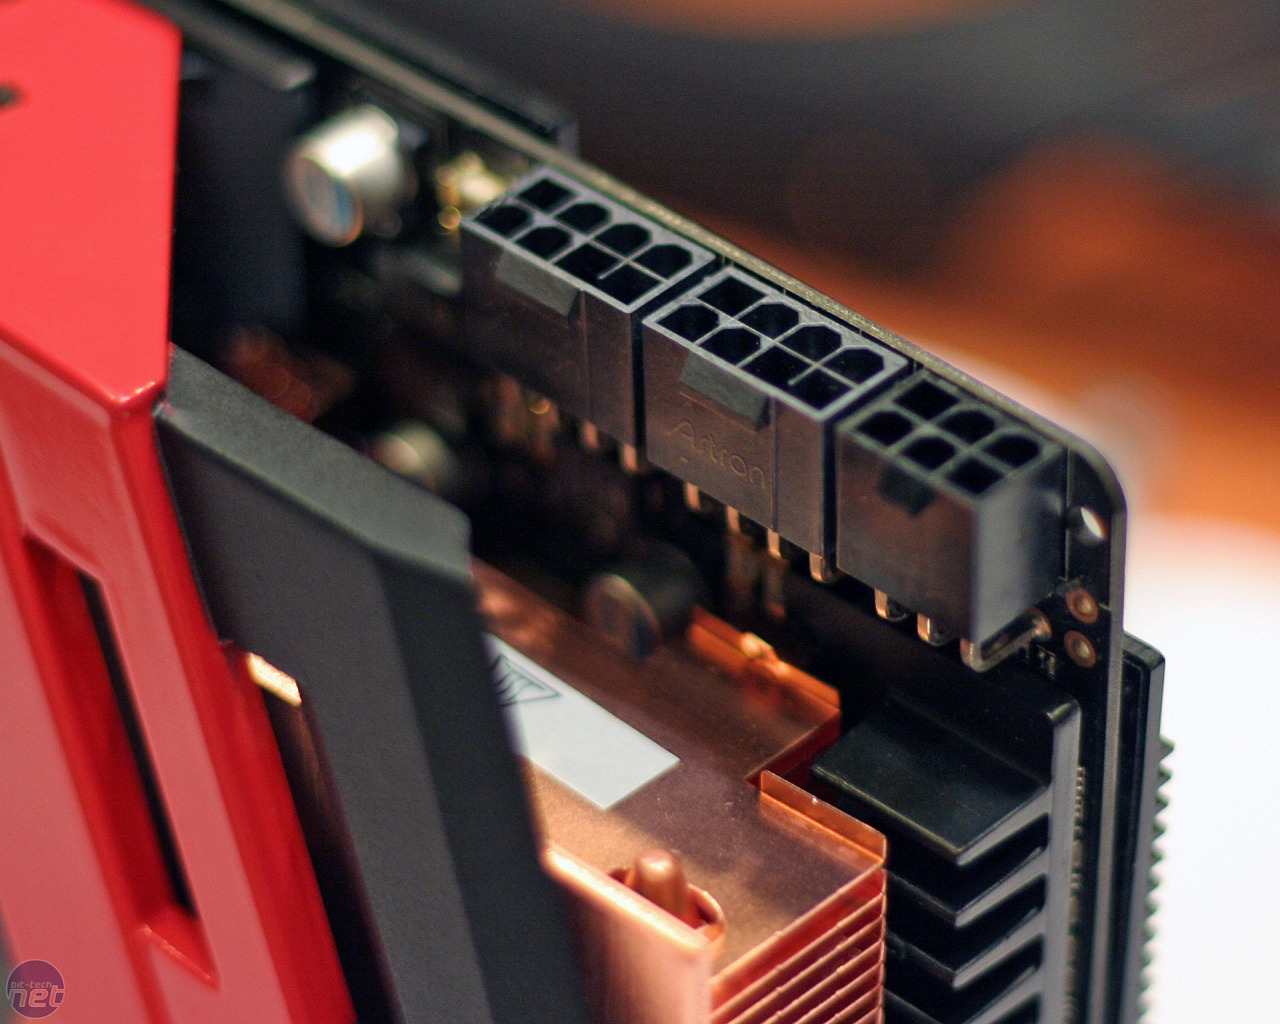 http://images.bit-tech.net/content_images/2010/06/asus-ares-and-immensity-technology-preview/ares-2.jpg